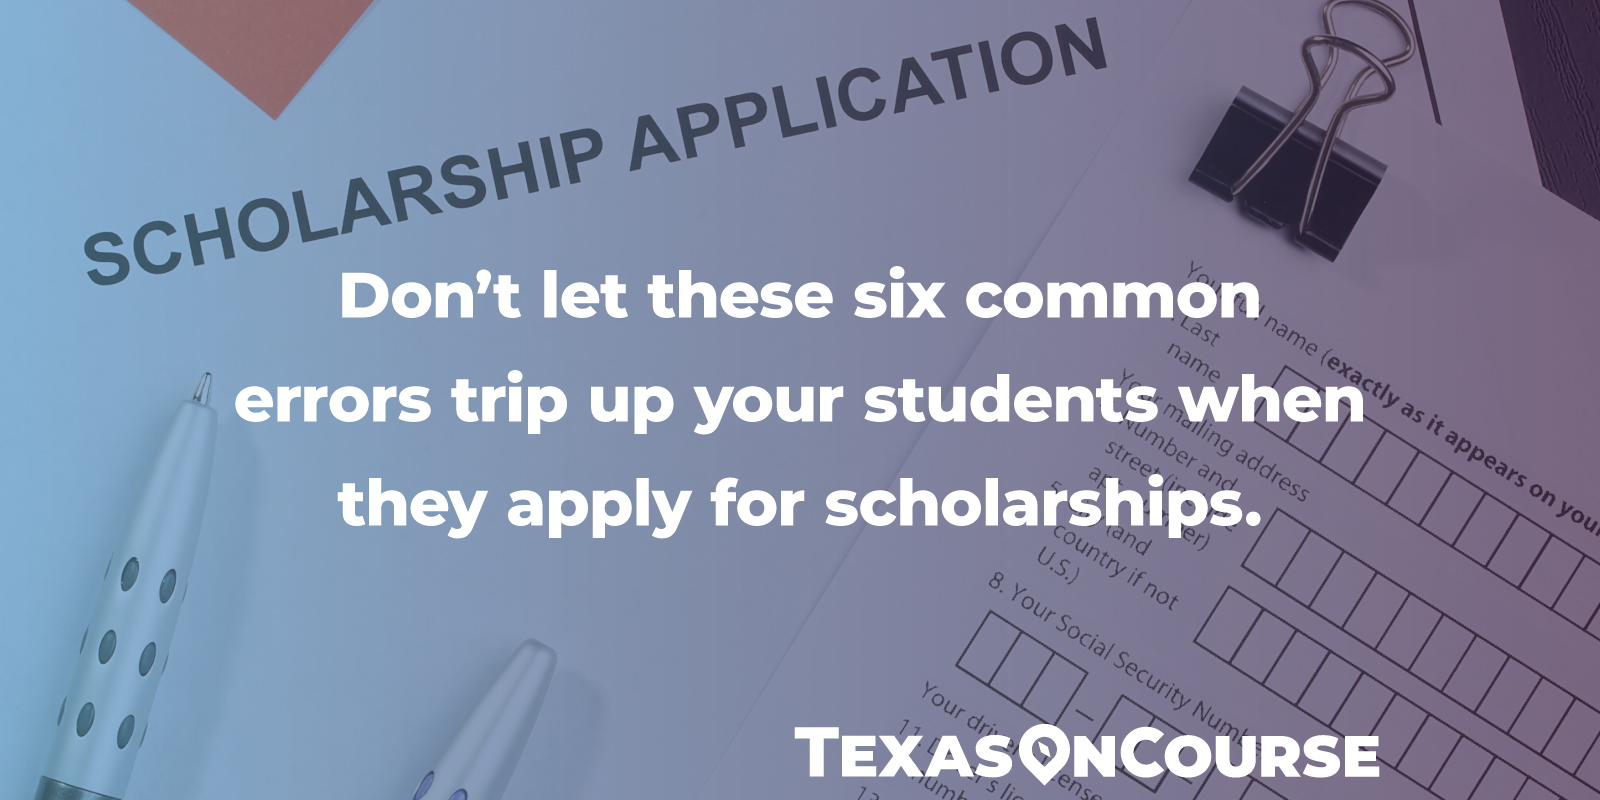 Don't let these six common errors trip up your students when they apply for scholarships.